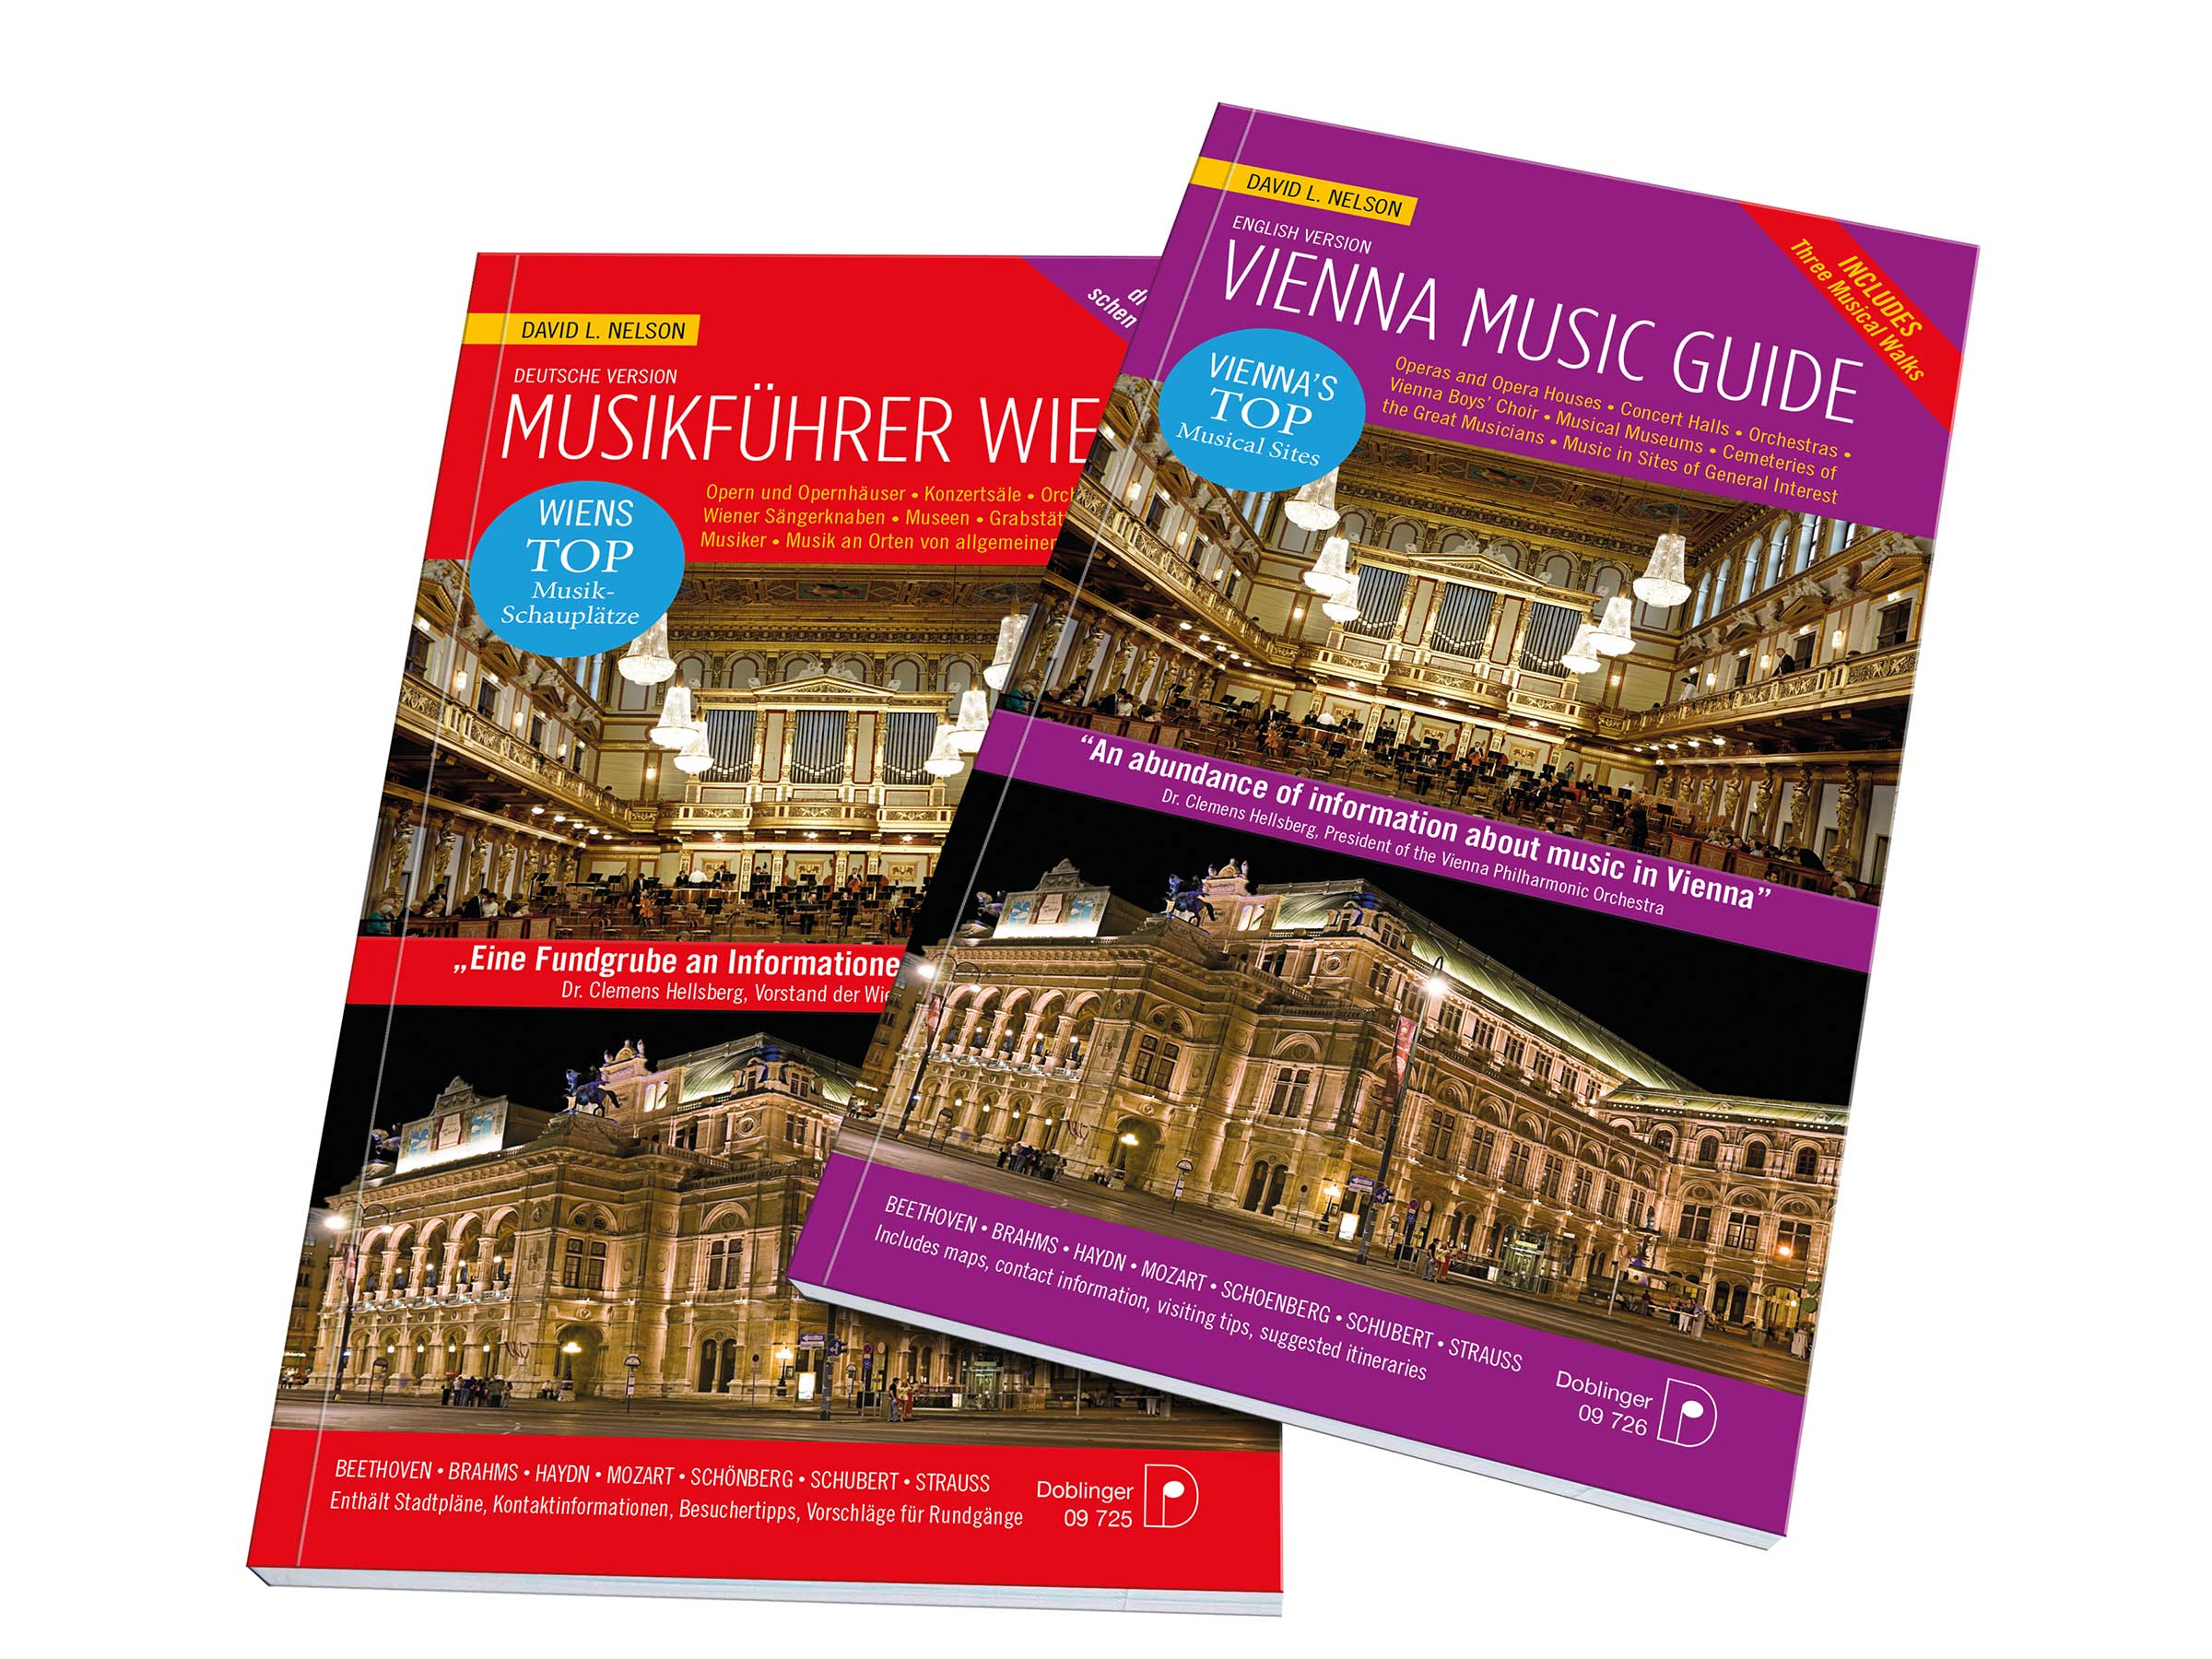 vienna-music-guide-doblinger-david-nelson-classical-music